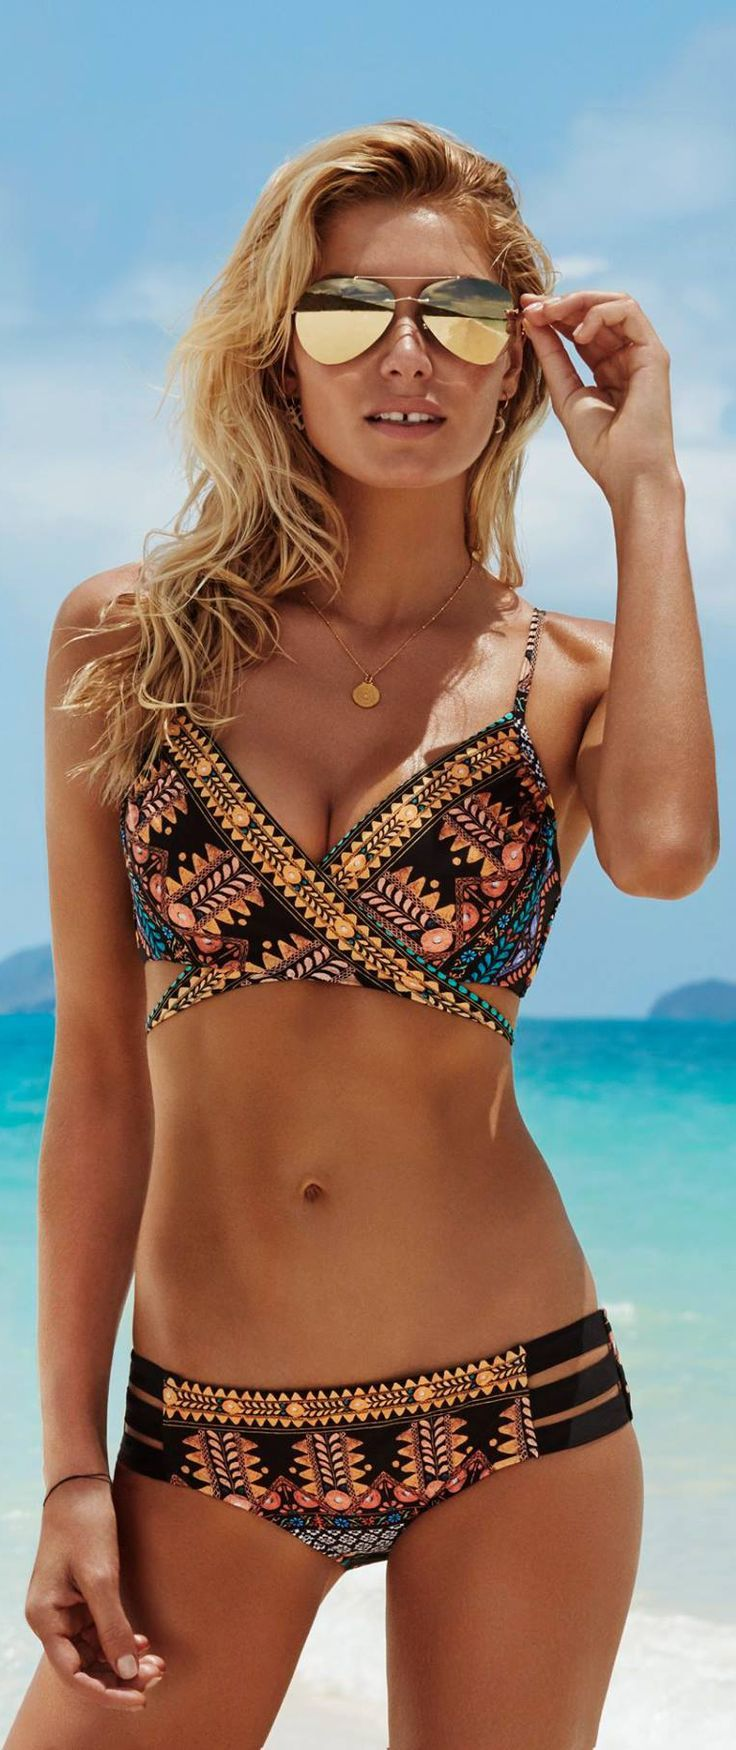 ... Suit Set Swimwear Beachwear For Girls. Bohemia Printed Two-Pieces  Bikini Swimwear – oshoplive. Te gusta el estilo bohemio  288066585605